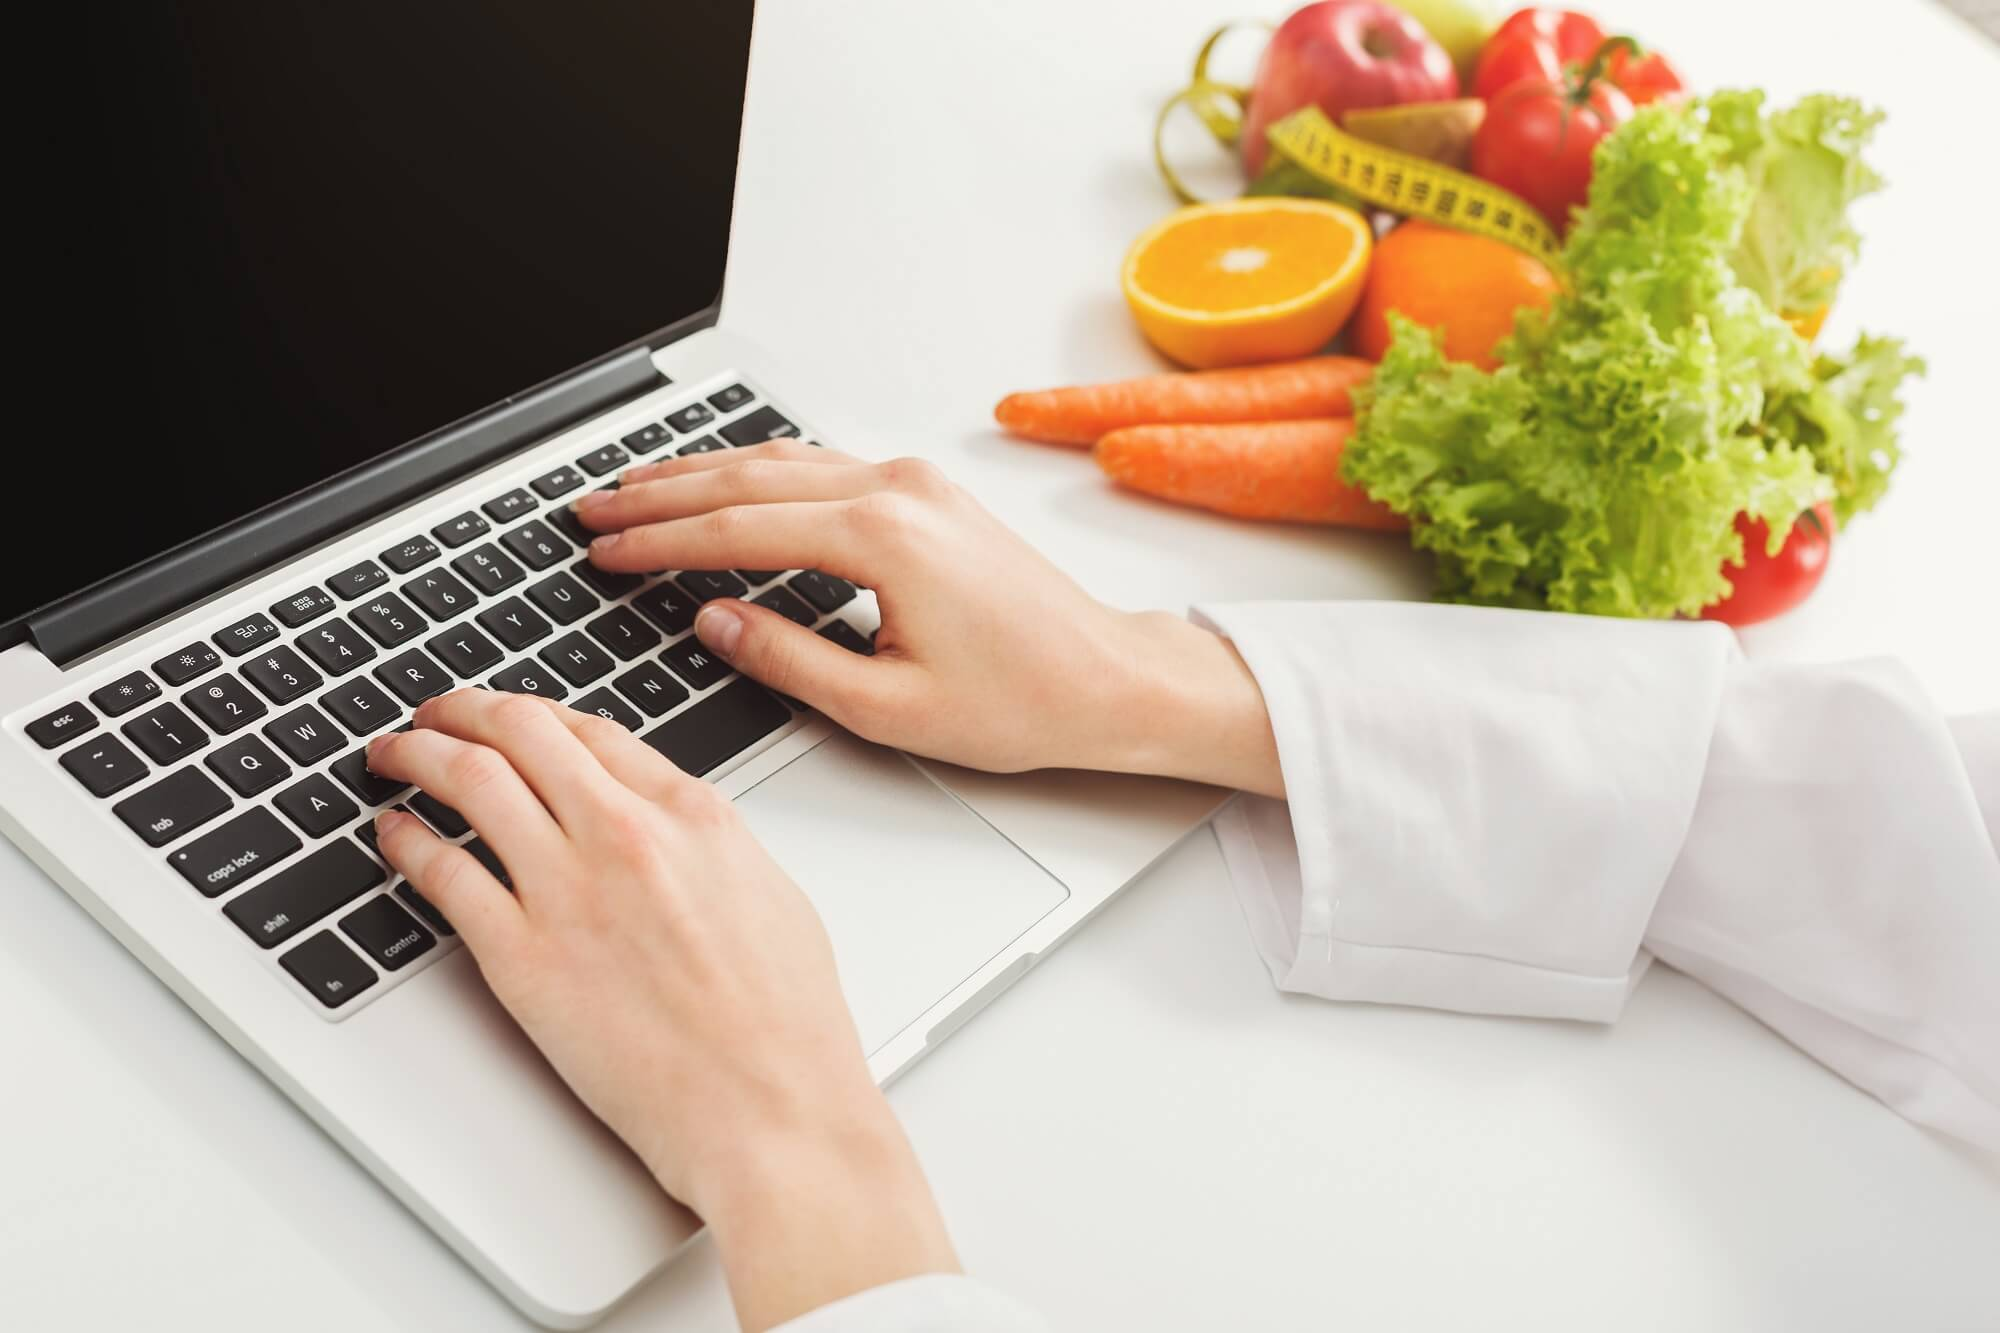 How To Find A Registered Dietitian Or Sports Nutritionist Near Me